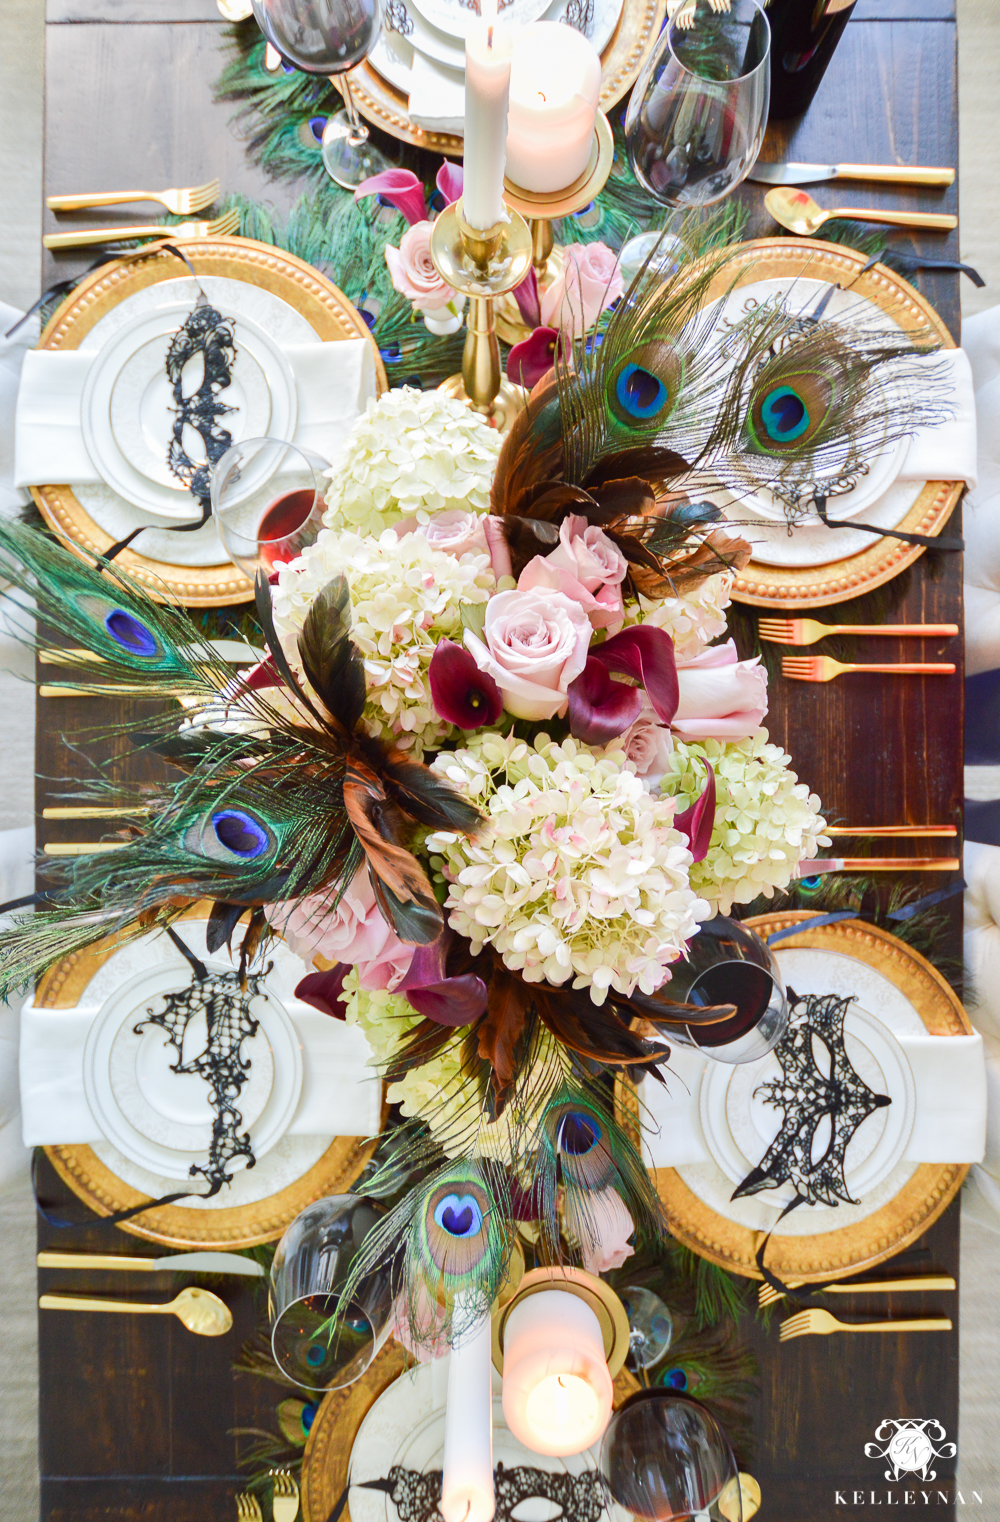 Masquerade Dinner Party for Halloween with Full Table Setting_-birds eye view of tablescape